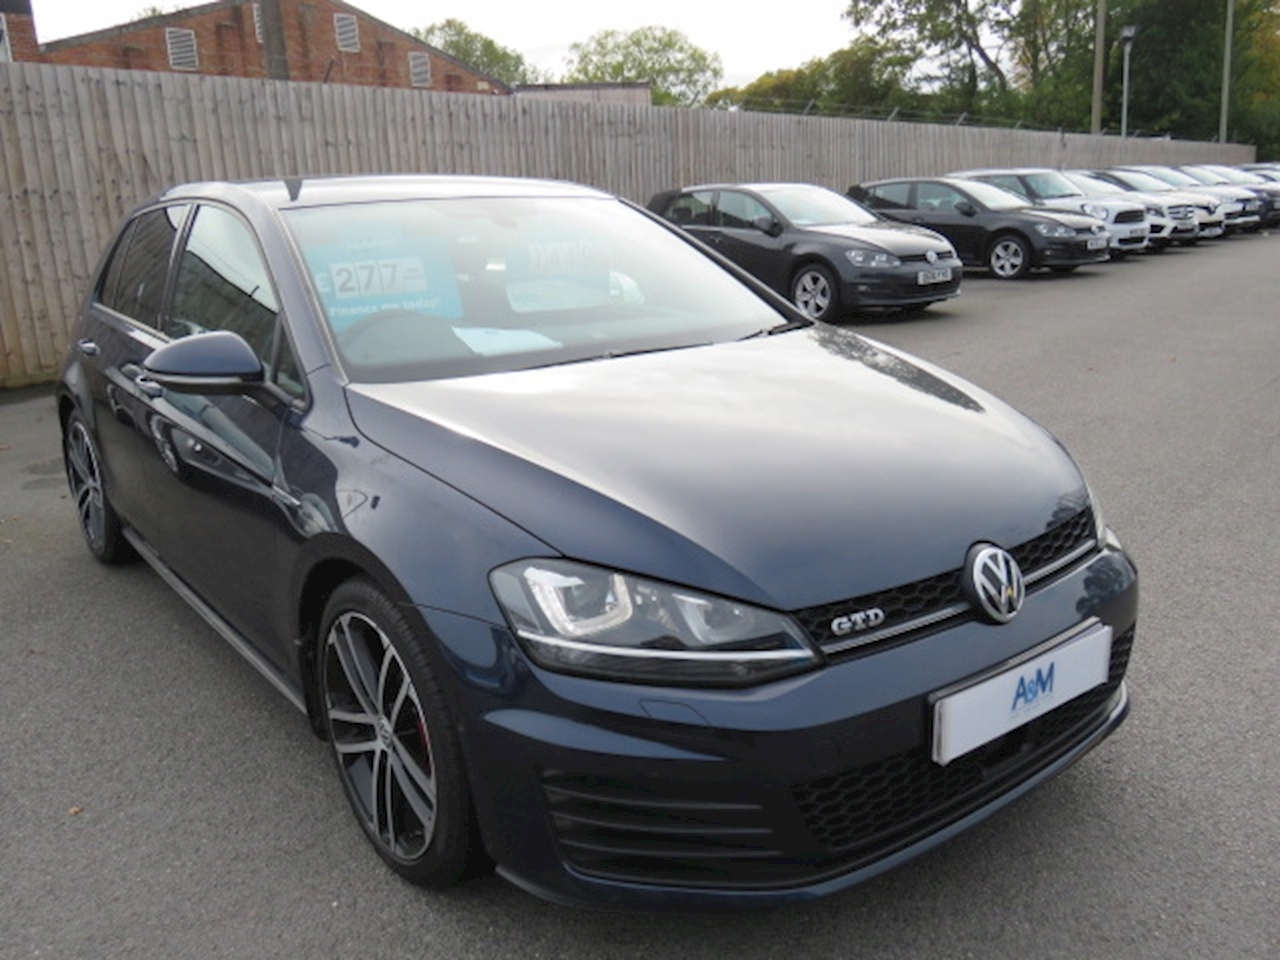 Volkswagen Golf GTD 2.0 5dr Hatchback Manual Diesel